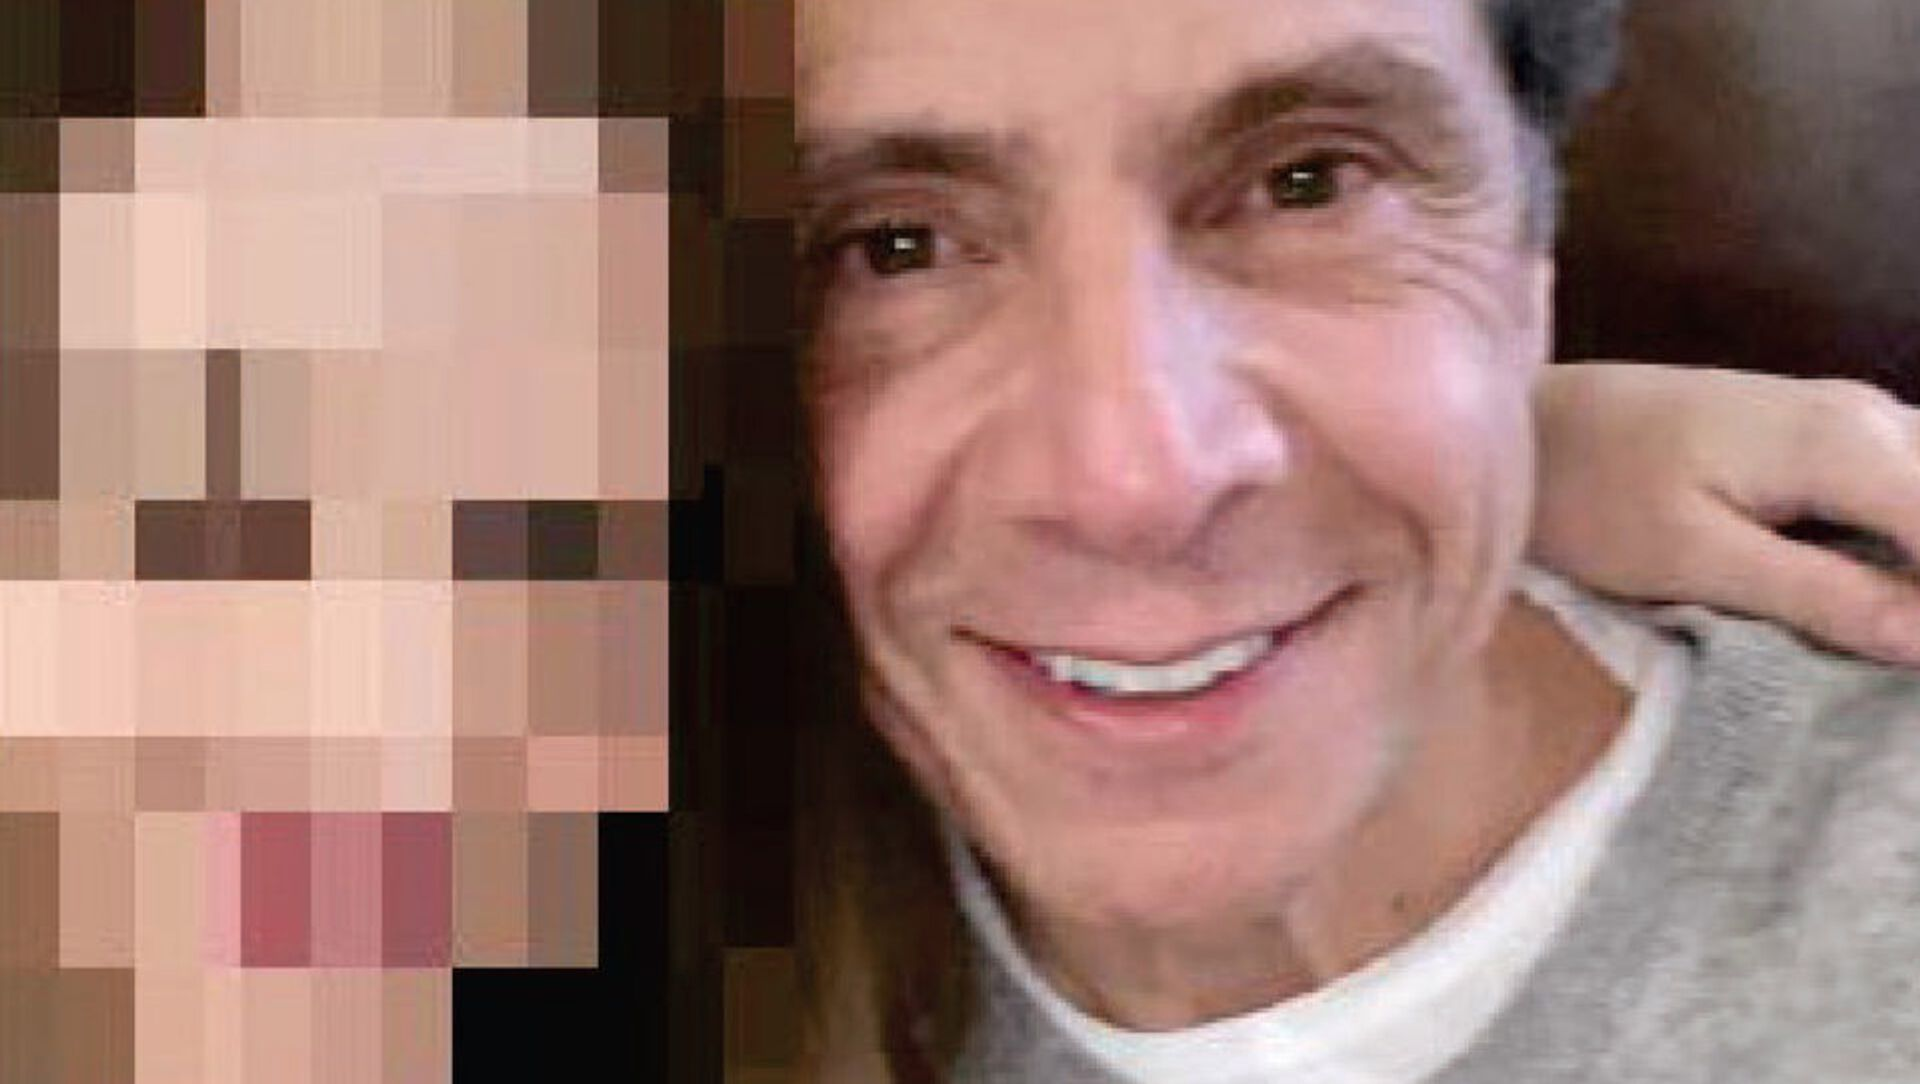 Andrew Cuomo pictured with Executive Assistant #1 - Sputnik International, 1920, 04.08.2021